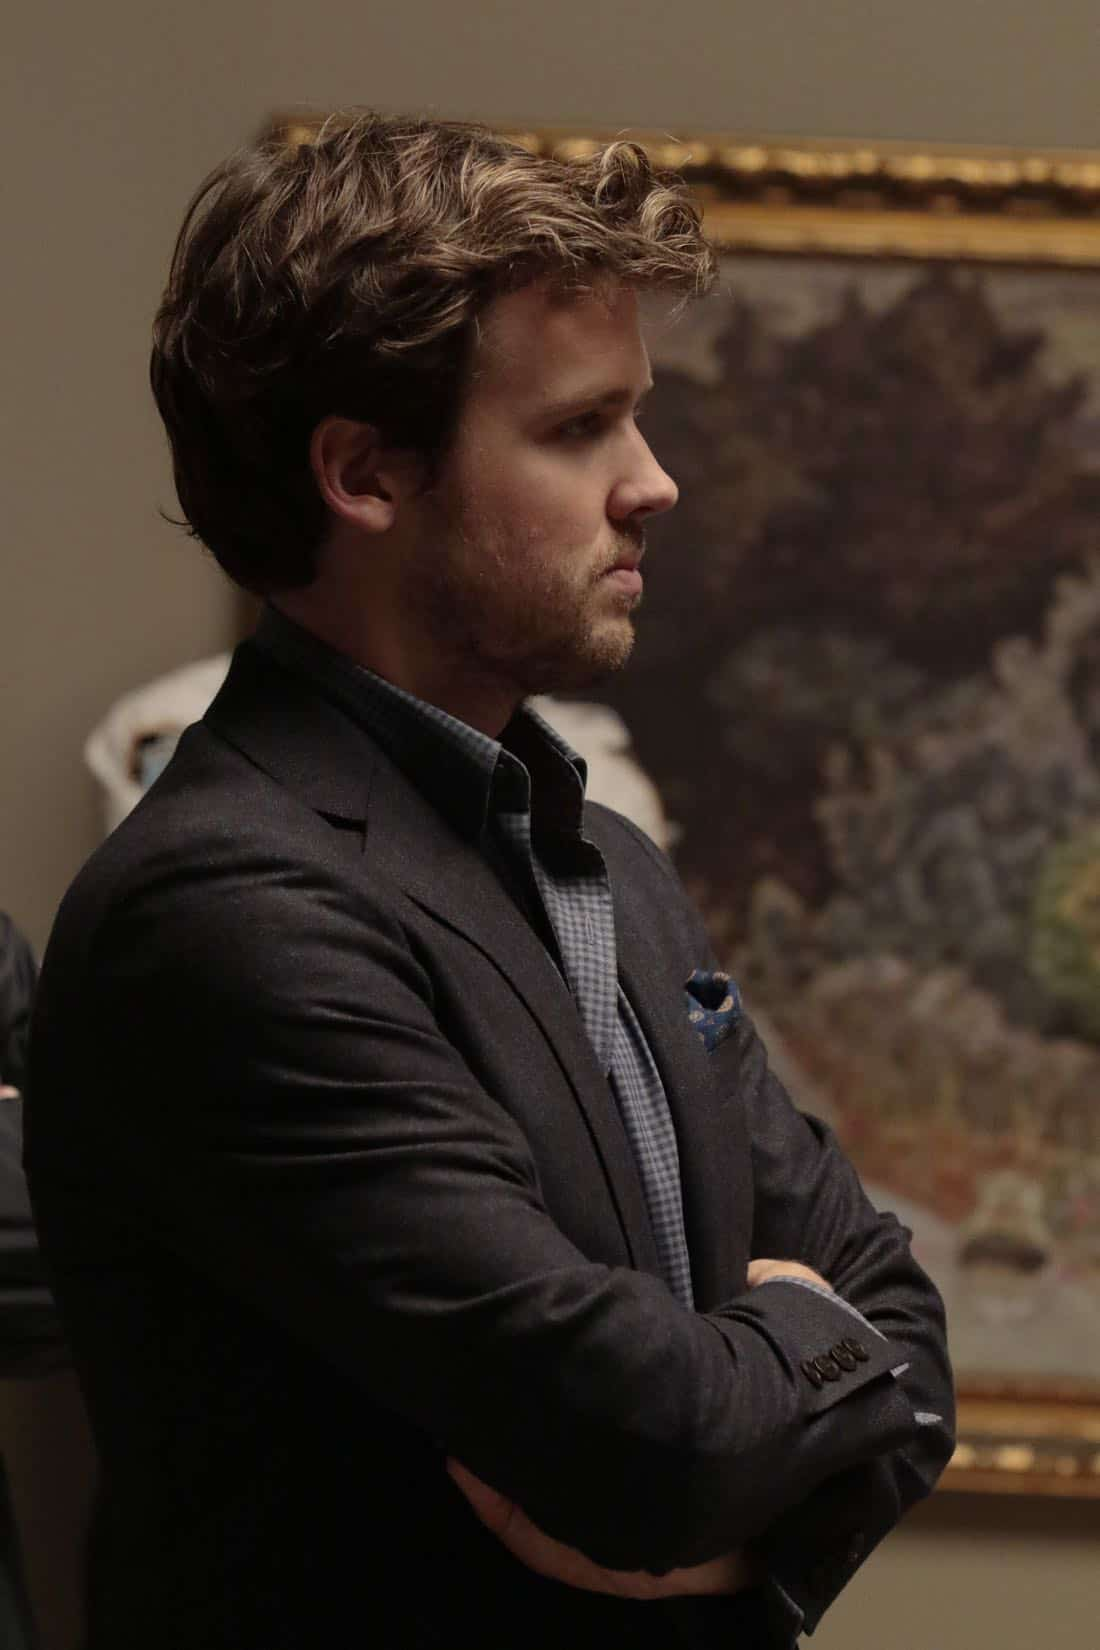 """DECEPTION - """"Escapology"""" - When an art museum docent is held hostage, Kay enlists Cameron and his team to help rescue her using the art of escapology, on """"Deception,"""" airing SUNDAY, MARCH 25 (10:01-11:00 p.m. EDT), on The ABC Television Network. (ABC/Giovanni Rufino) JACK CUTMORE"""